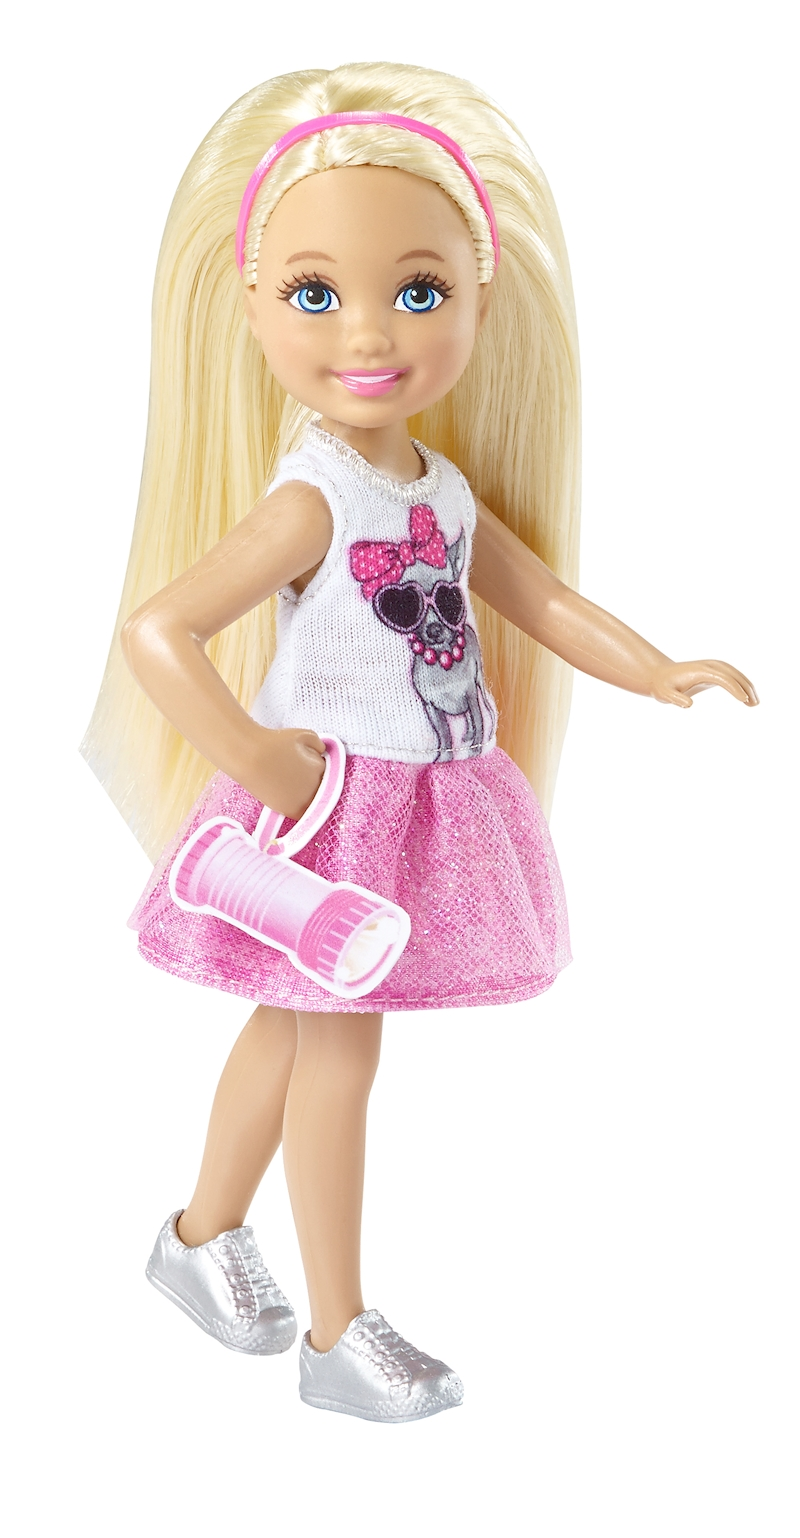 Barbie In The Pink Shoes And Pink Dress